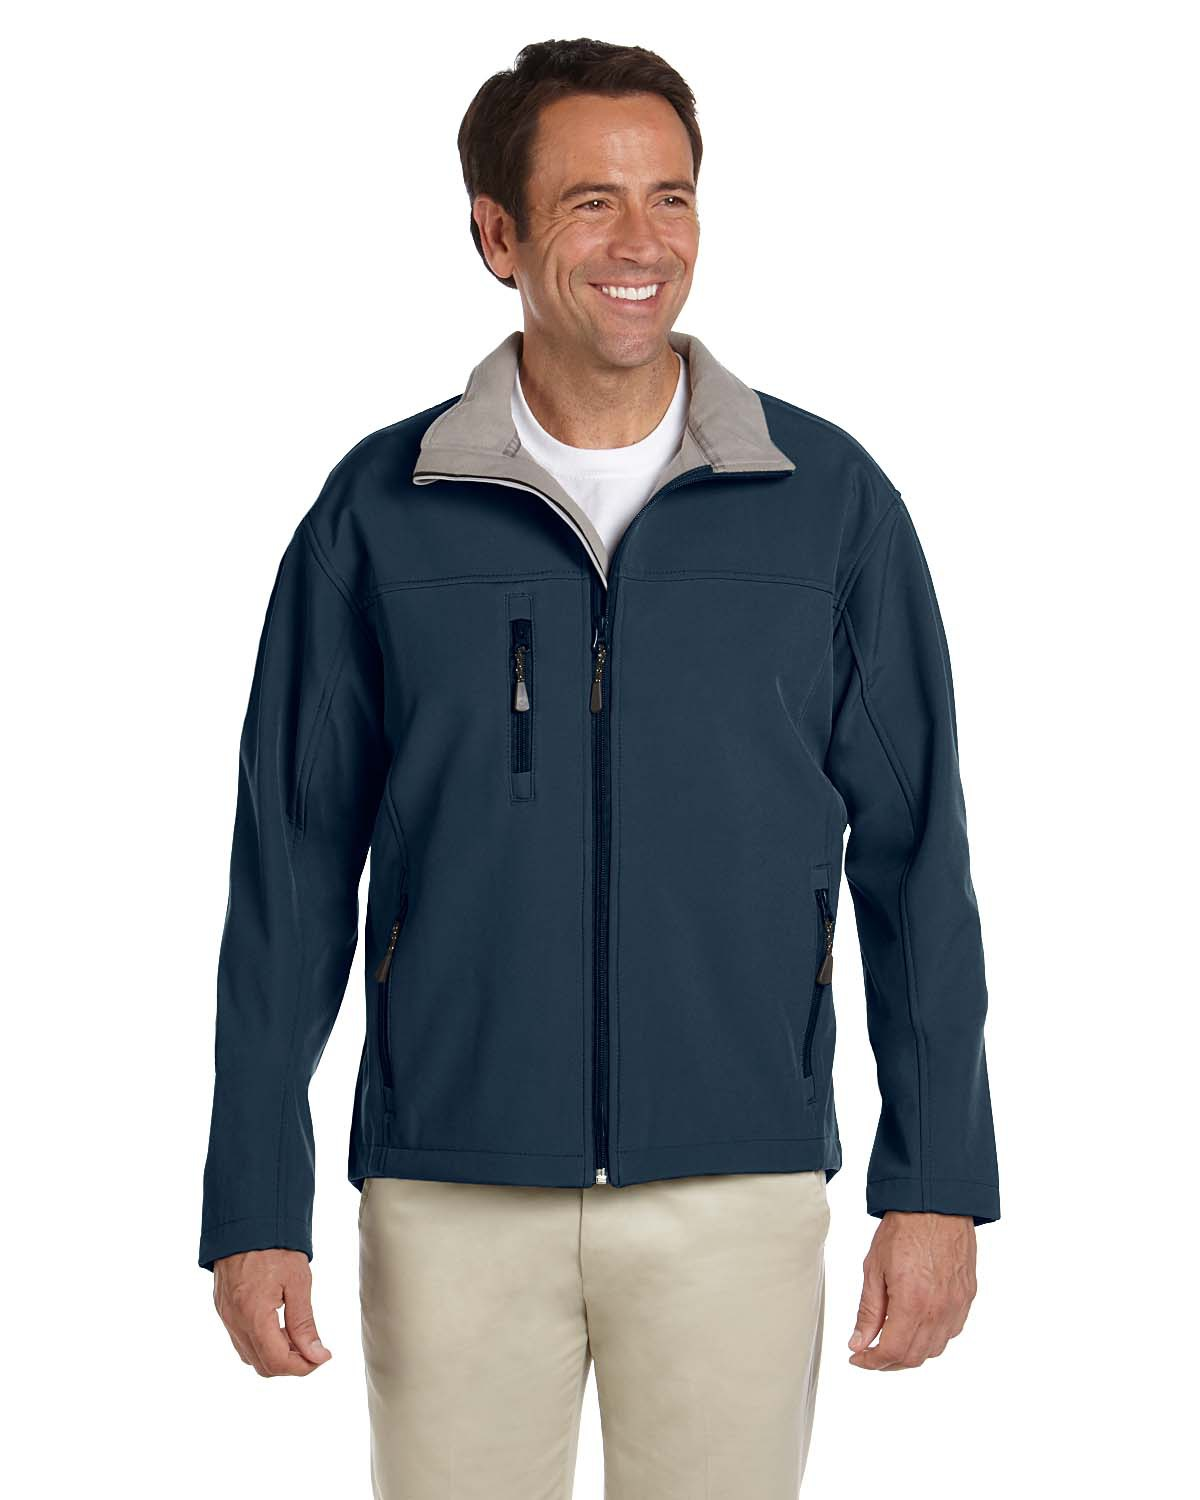 Devon & Jones D995 - Men's Soft Shell Jacket